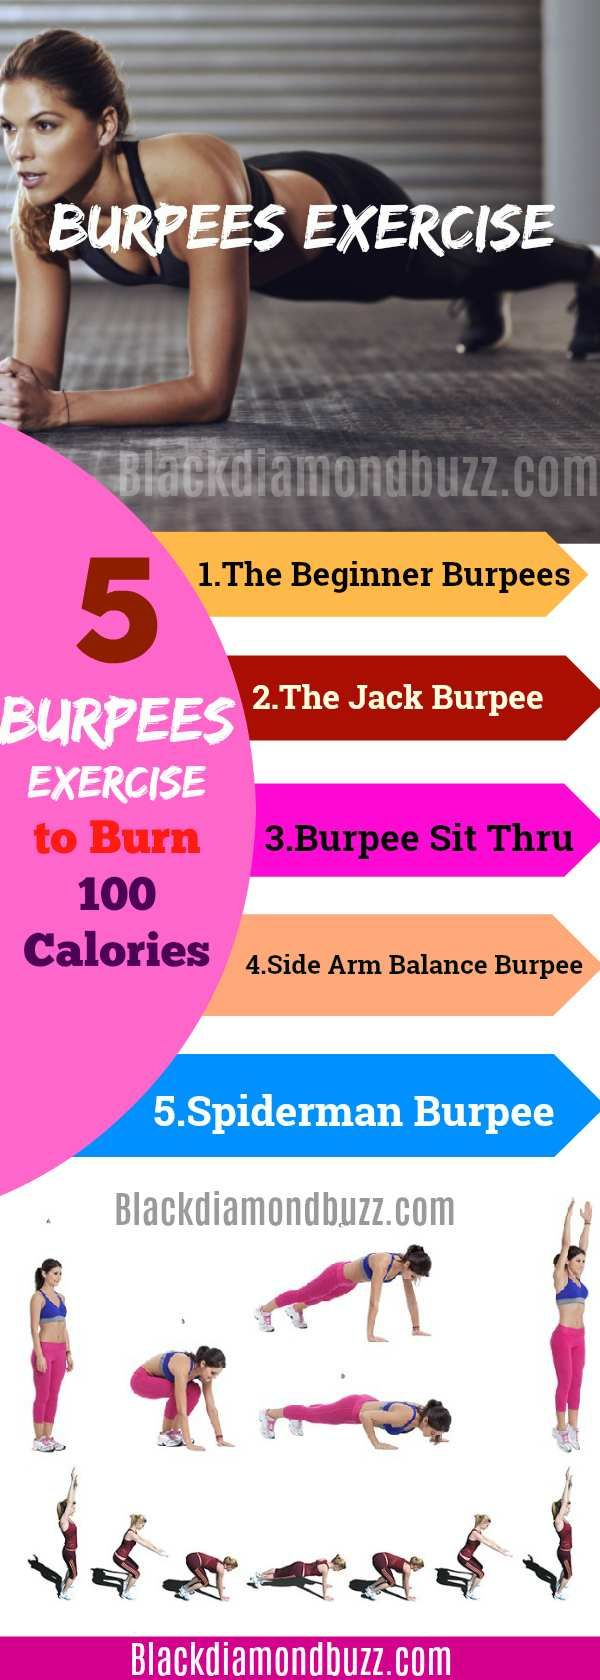 How To Do Burpees Exercises: 5 Burpees Exercises to Burn 100 Calories- Now, there are many variations of this amazing workout. It has been embraced by athletes, military forces, football teams and fitness experts. This article is aimed at showing you how to do burpees exercises. #burpee  #exercise #hiit